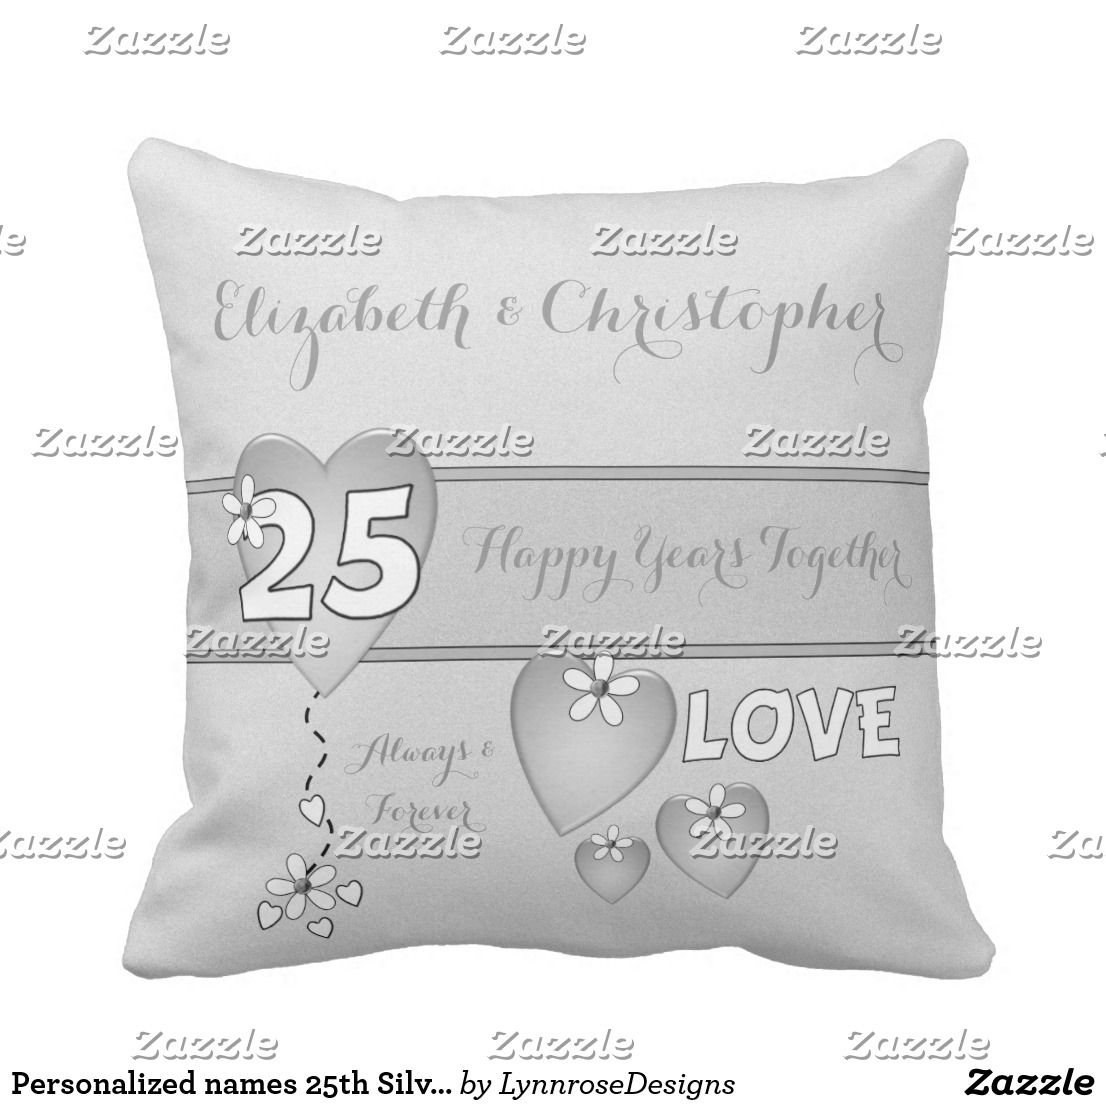 Personalized names th silver anniversary pillow cushion zazzle